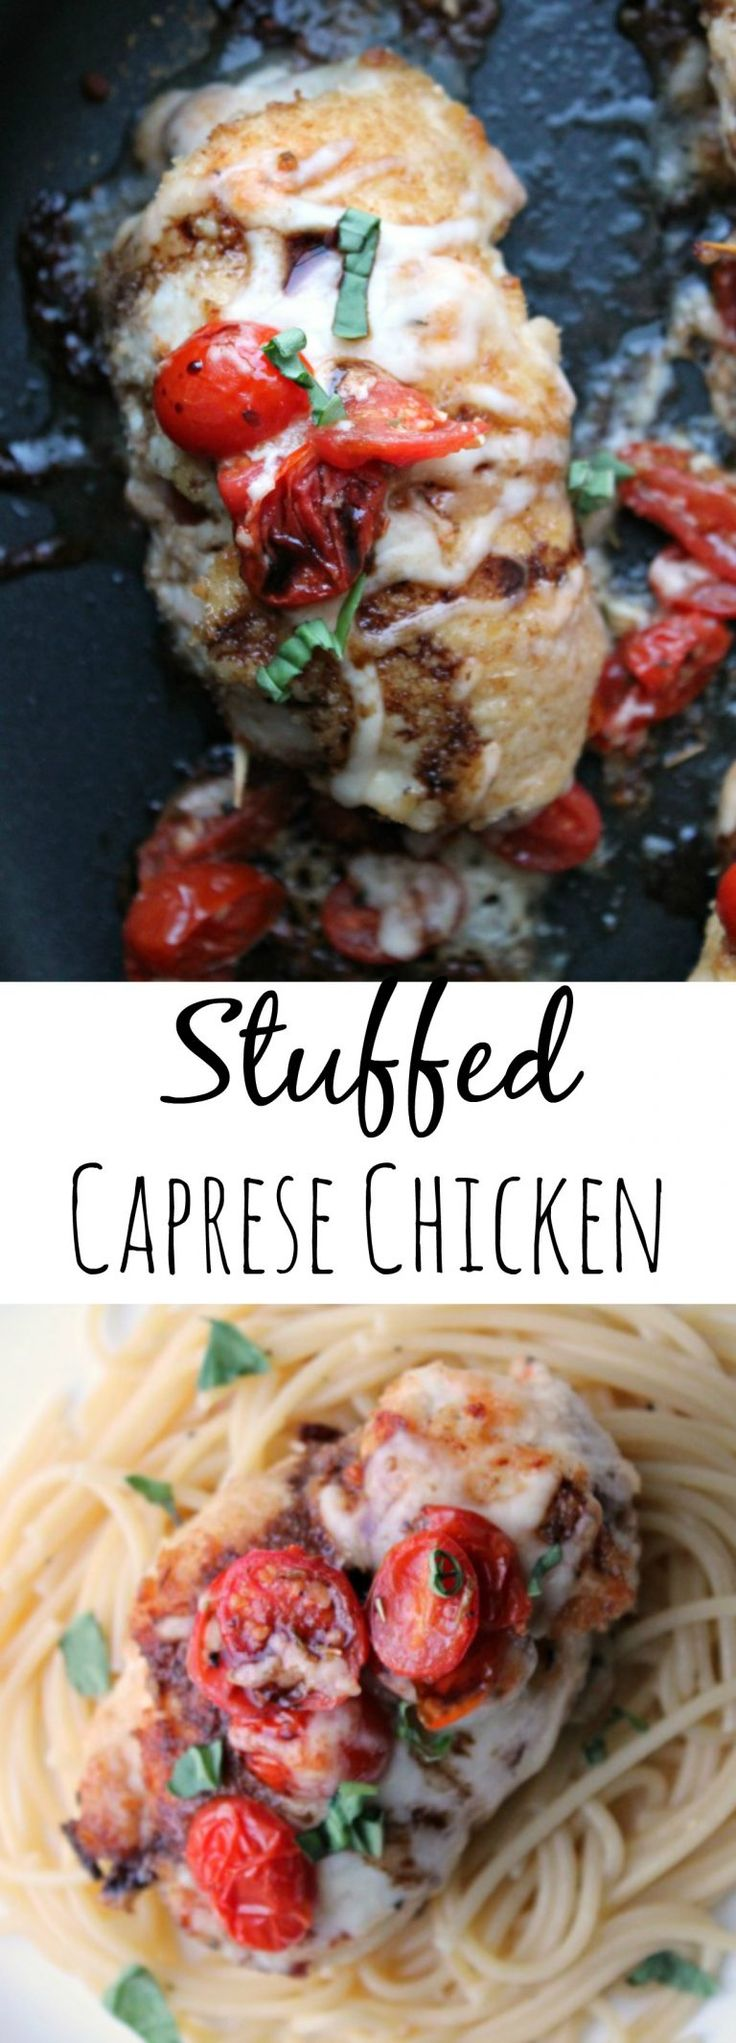 STUFFED CAPRESE CHICKEN by http://foodyschmoodyblog.com Chicken stuffed with tomatoes, basil and mozzarella; rolled in breadcrumbs and cooked to perfection!